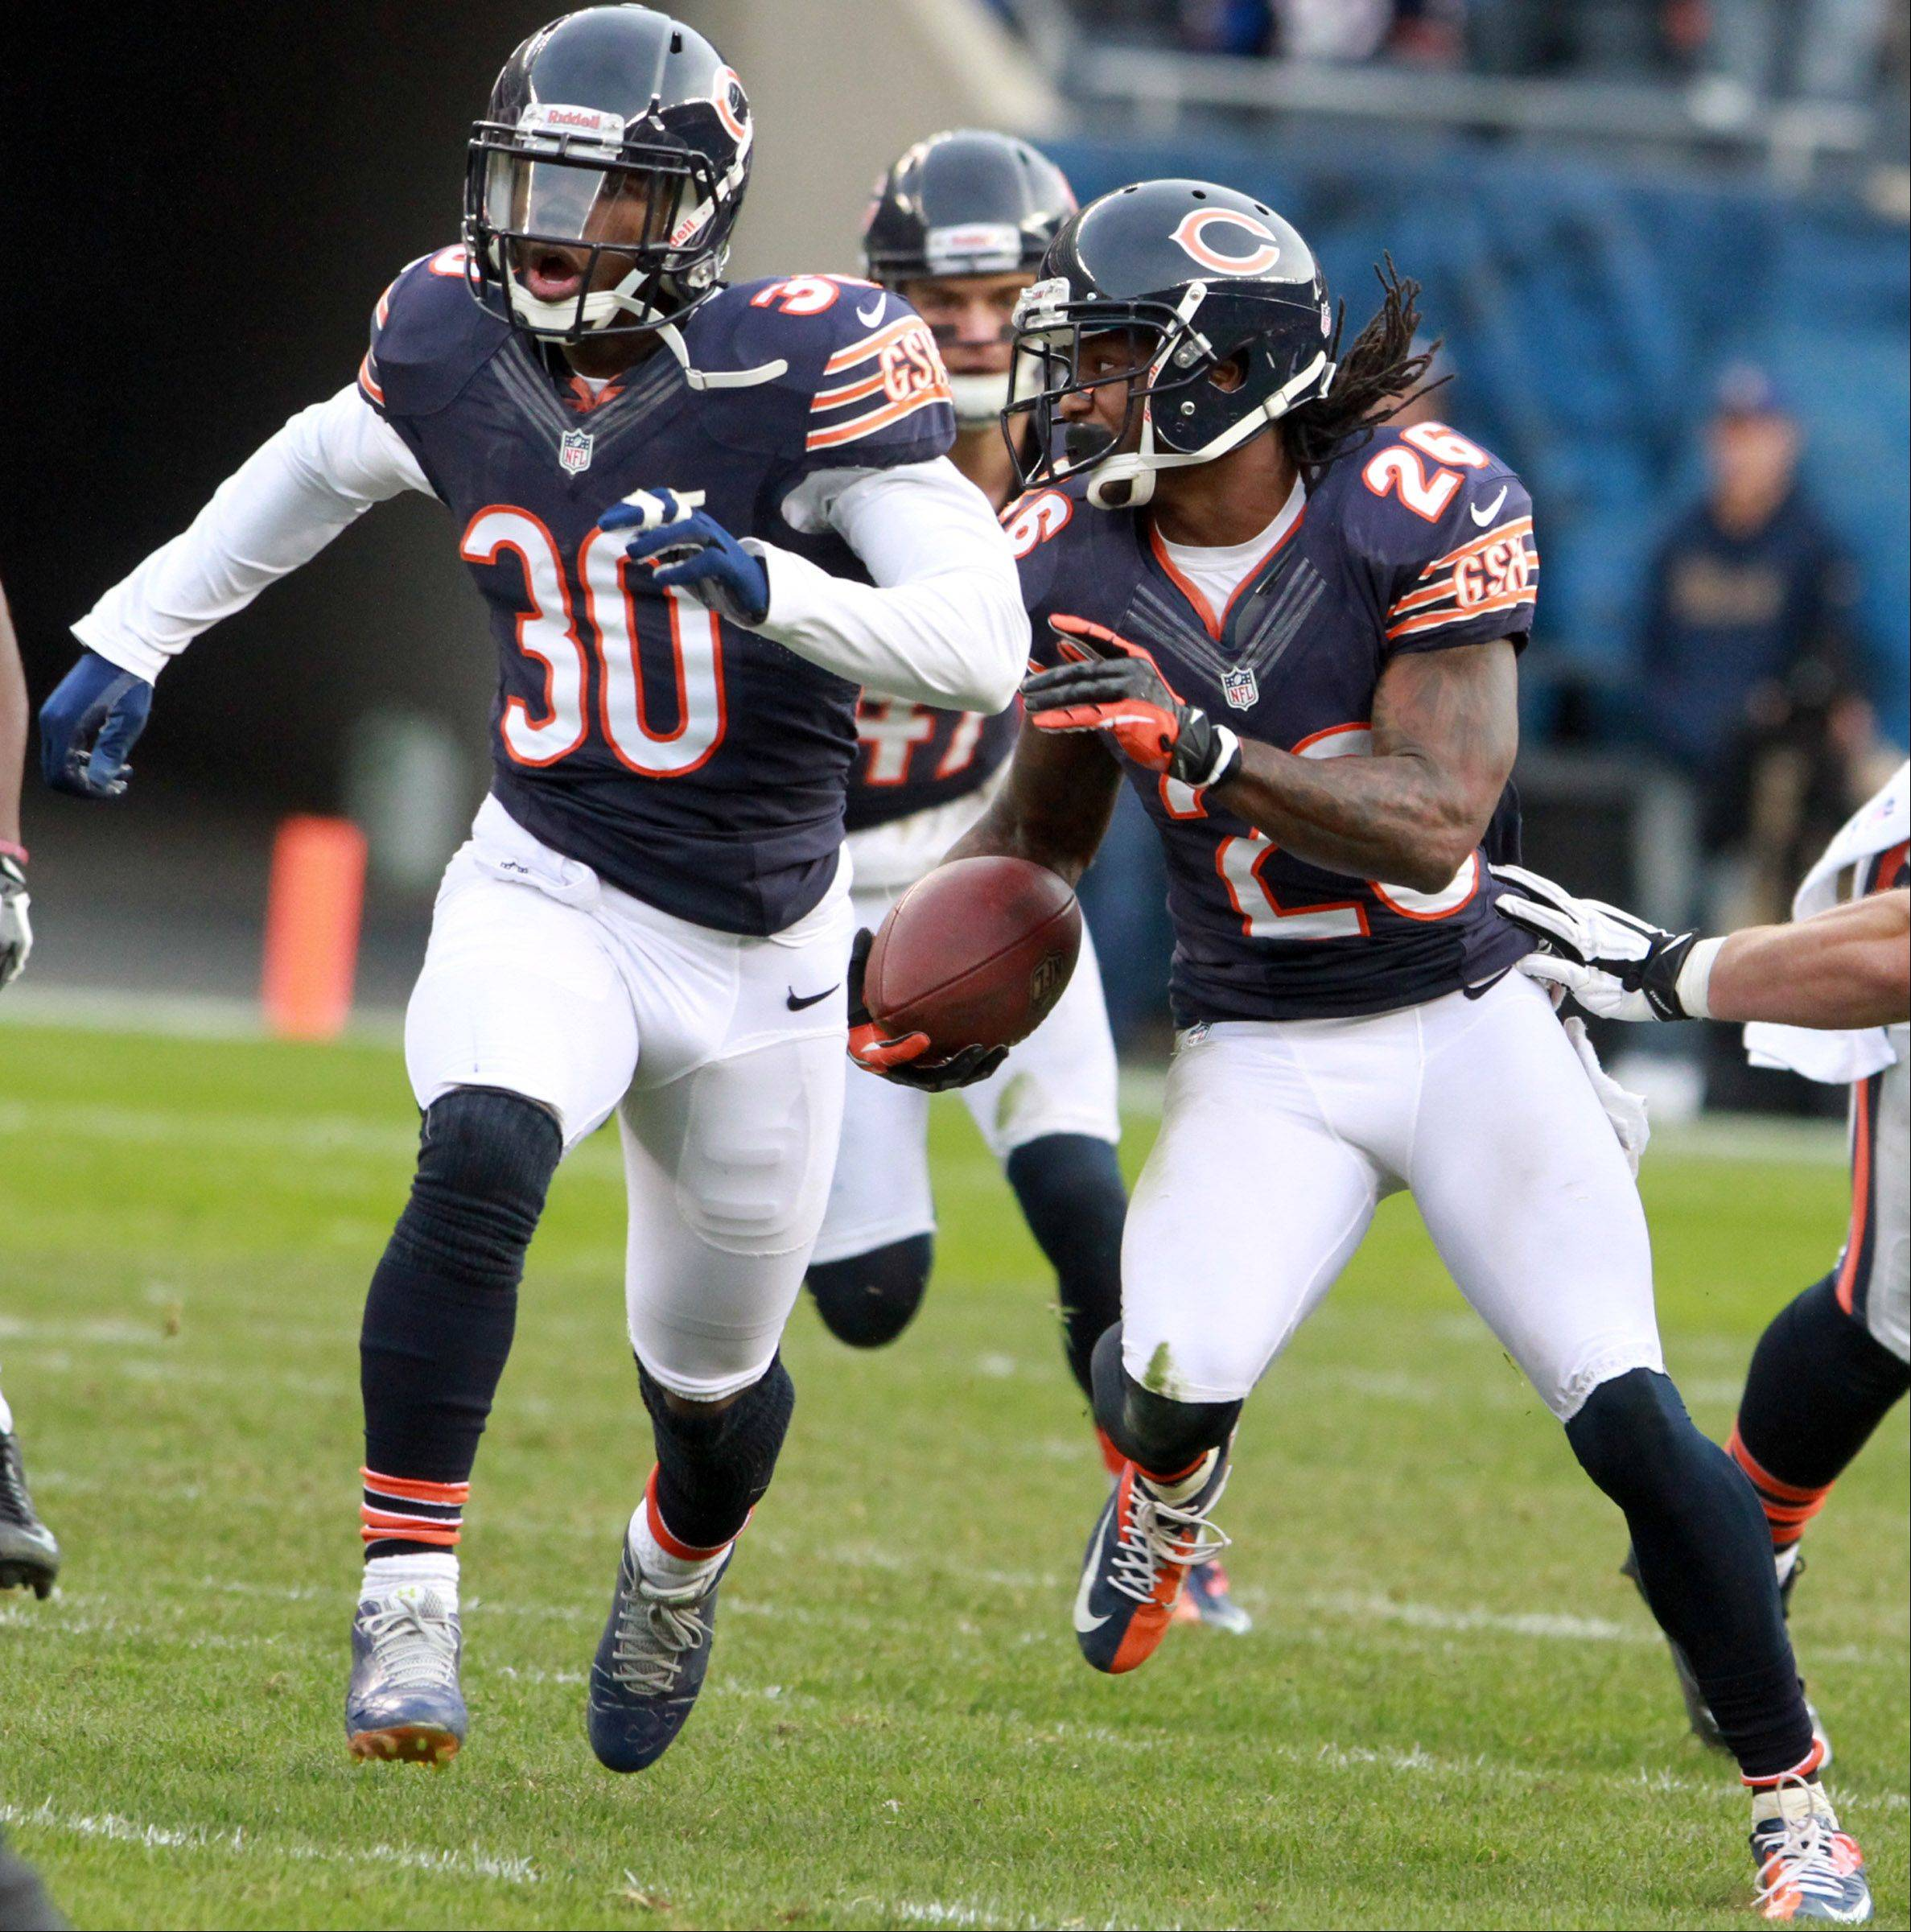 Chicago Bears cornerback Tim Jennings run the ball after intercepting a pass by Minnesota Vikings quarterback Christian Ponder at Soldier Field Sunday.